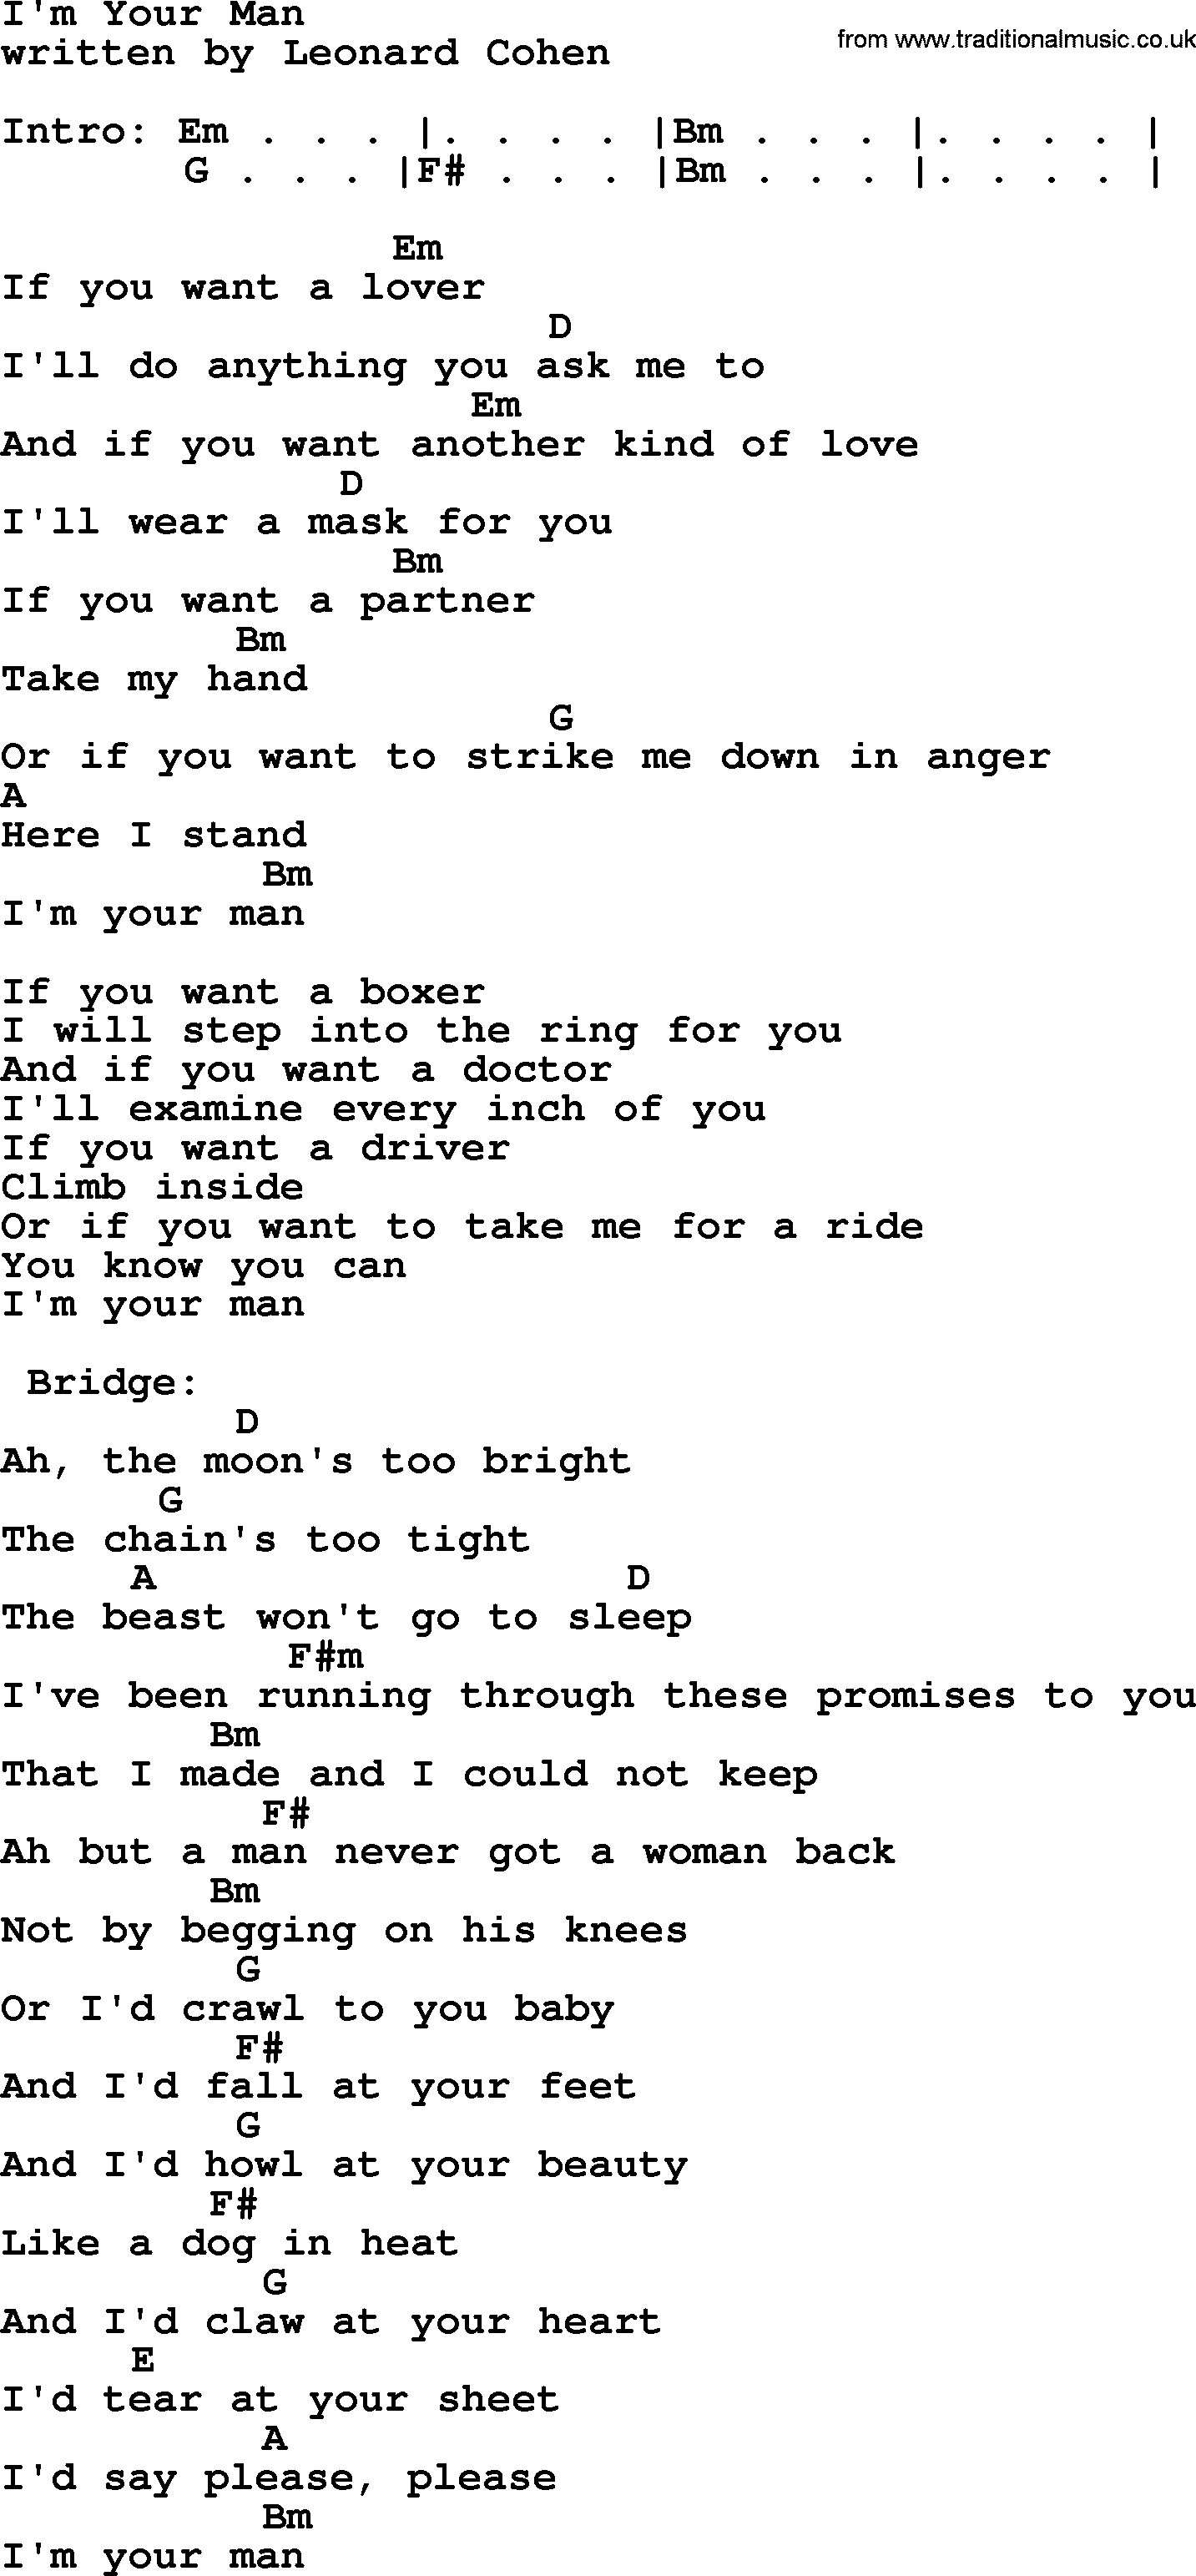 When I Was Your Man Chords Leonard Cohen Song Im Your Man Lyrics And Chords